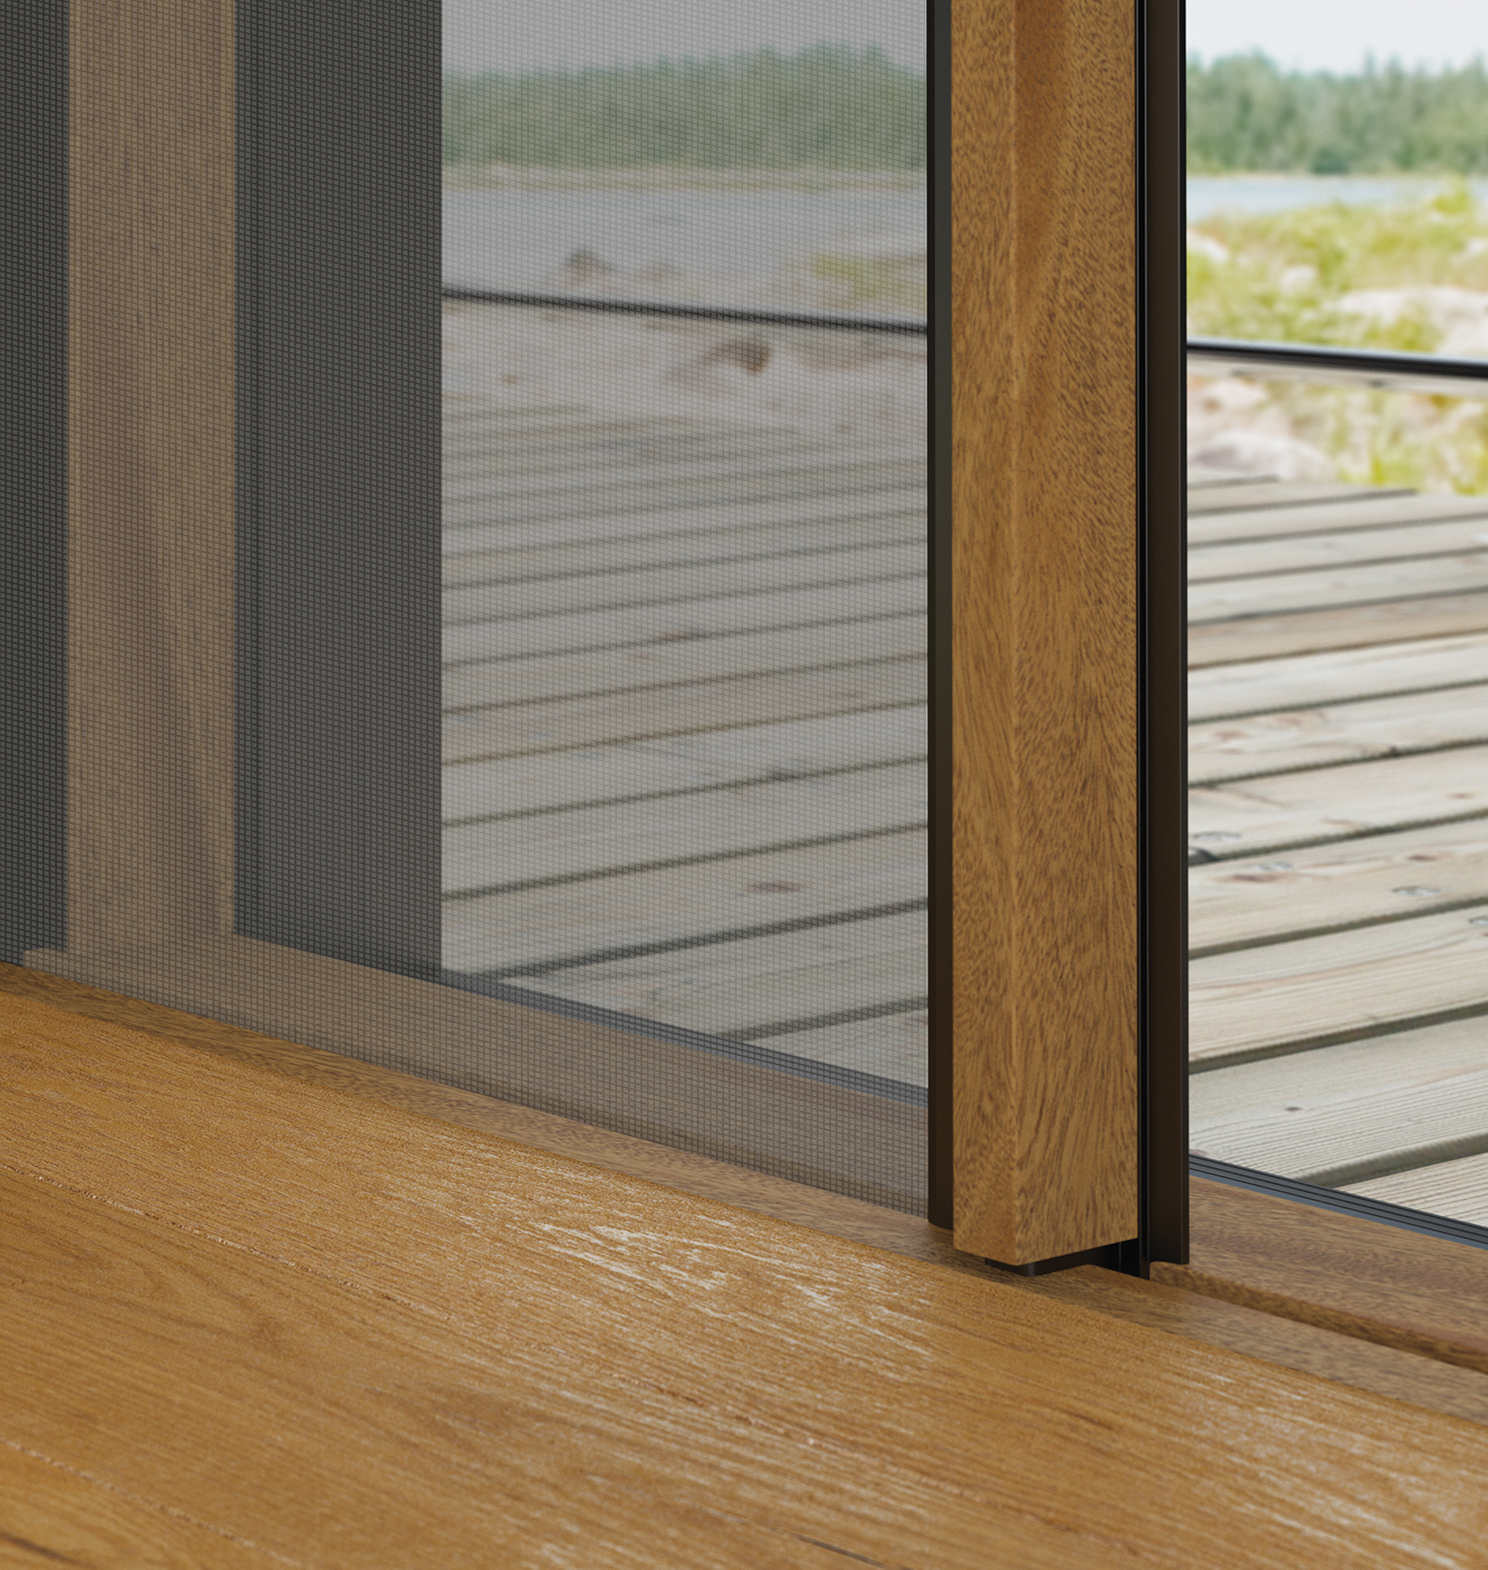 Screen doors installed by The Folding Door Store let in light and the outside and can be installed in your home.